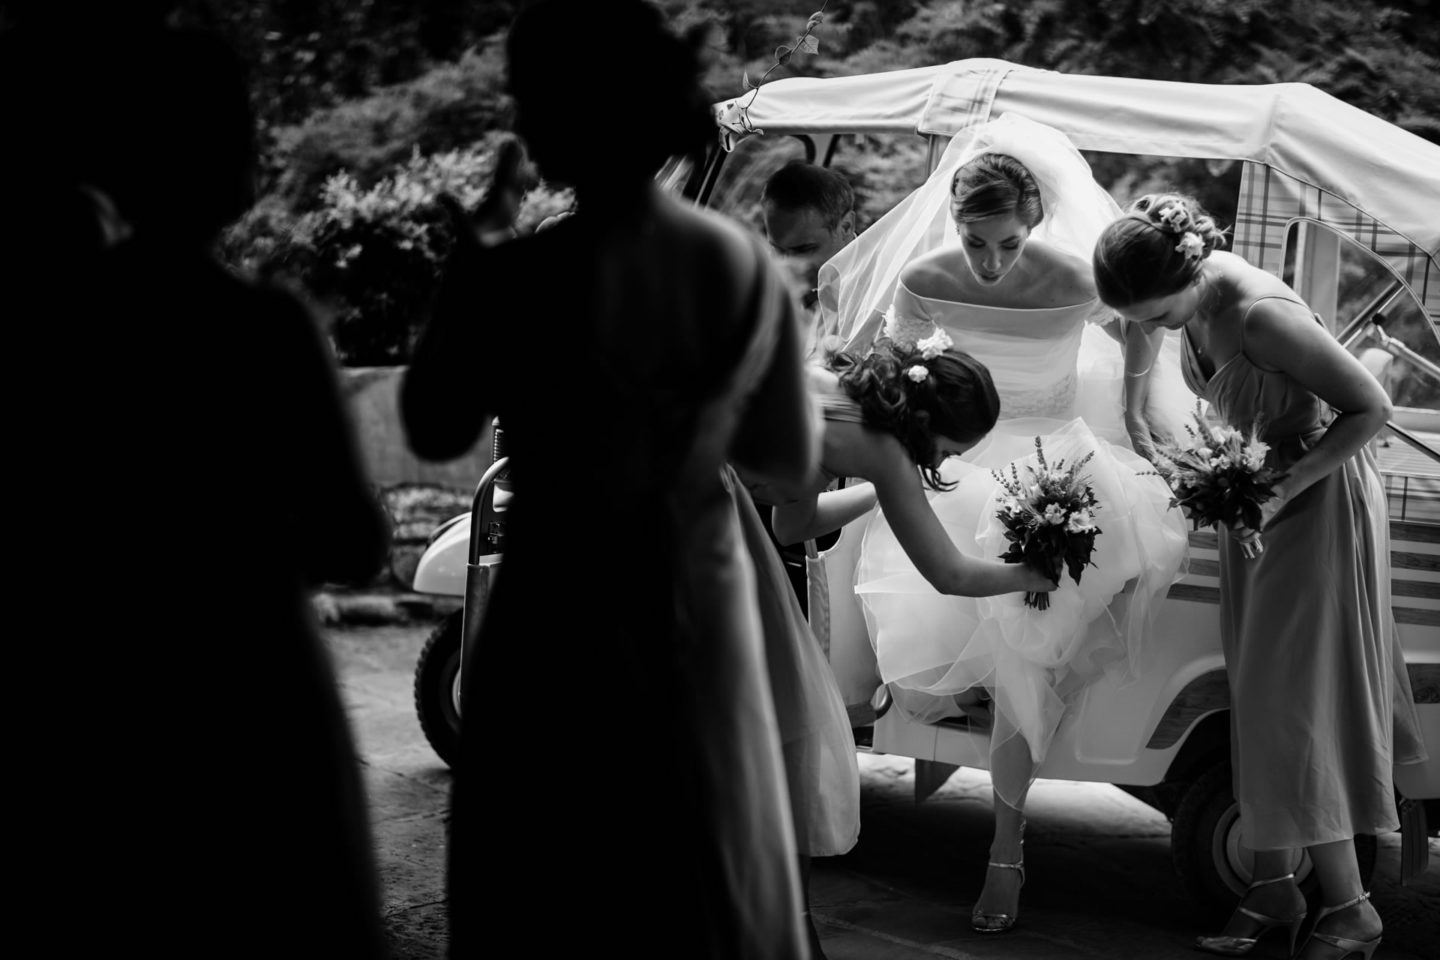 Arrival :: Amazing wedding day at Il Borro :: Luxury wedding photography - 15 :: Arrival